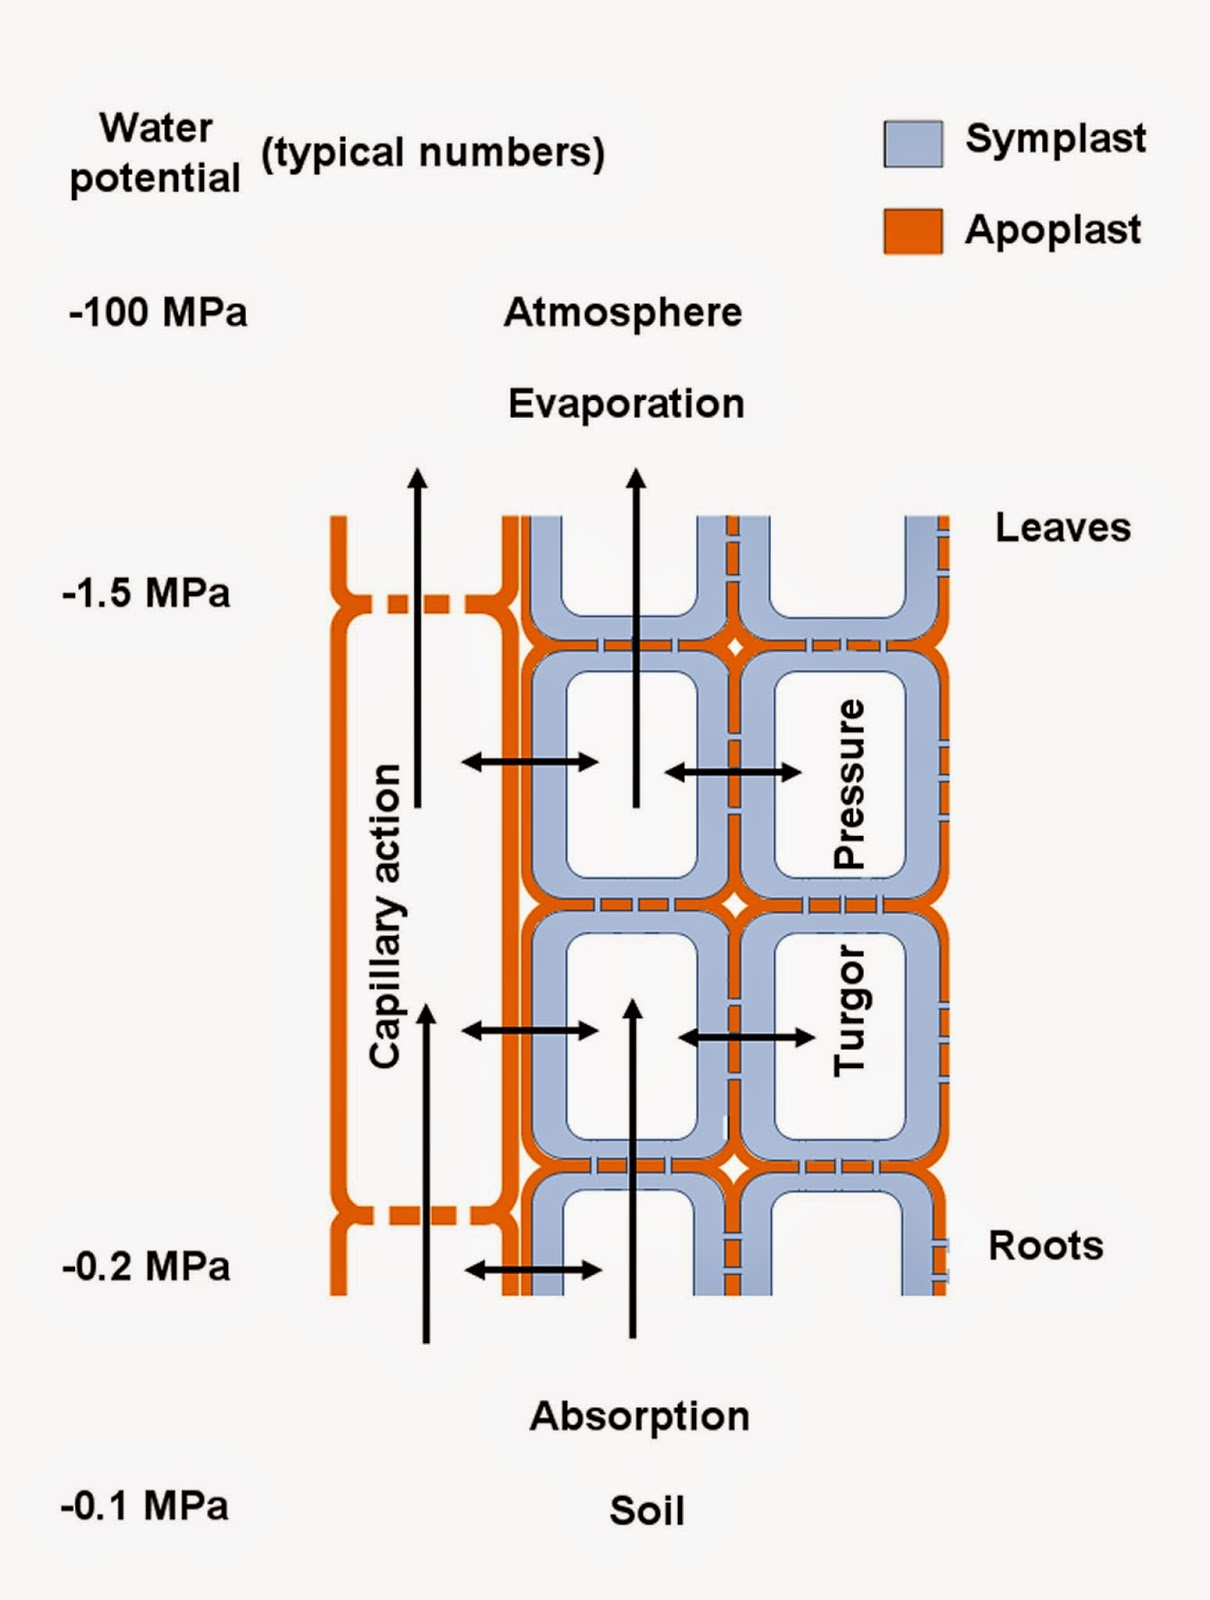 Botany Professor Water Potential Explained Simple Plant Cells Diagram Cell Easy And Is Drawn Upward By Evaporation In The Leaves Especially Xylem Left Side Of This Transpiration Absorbed Into